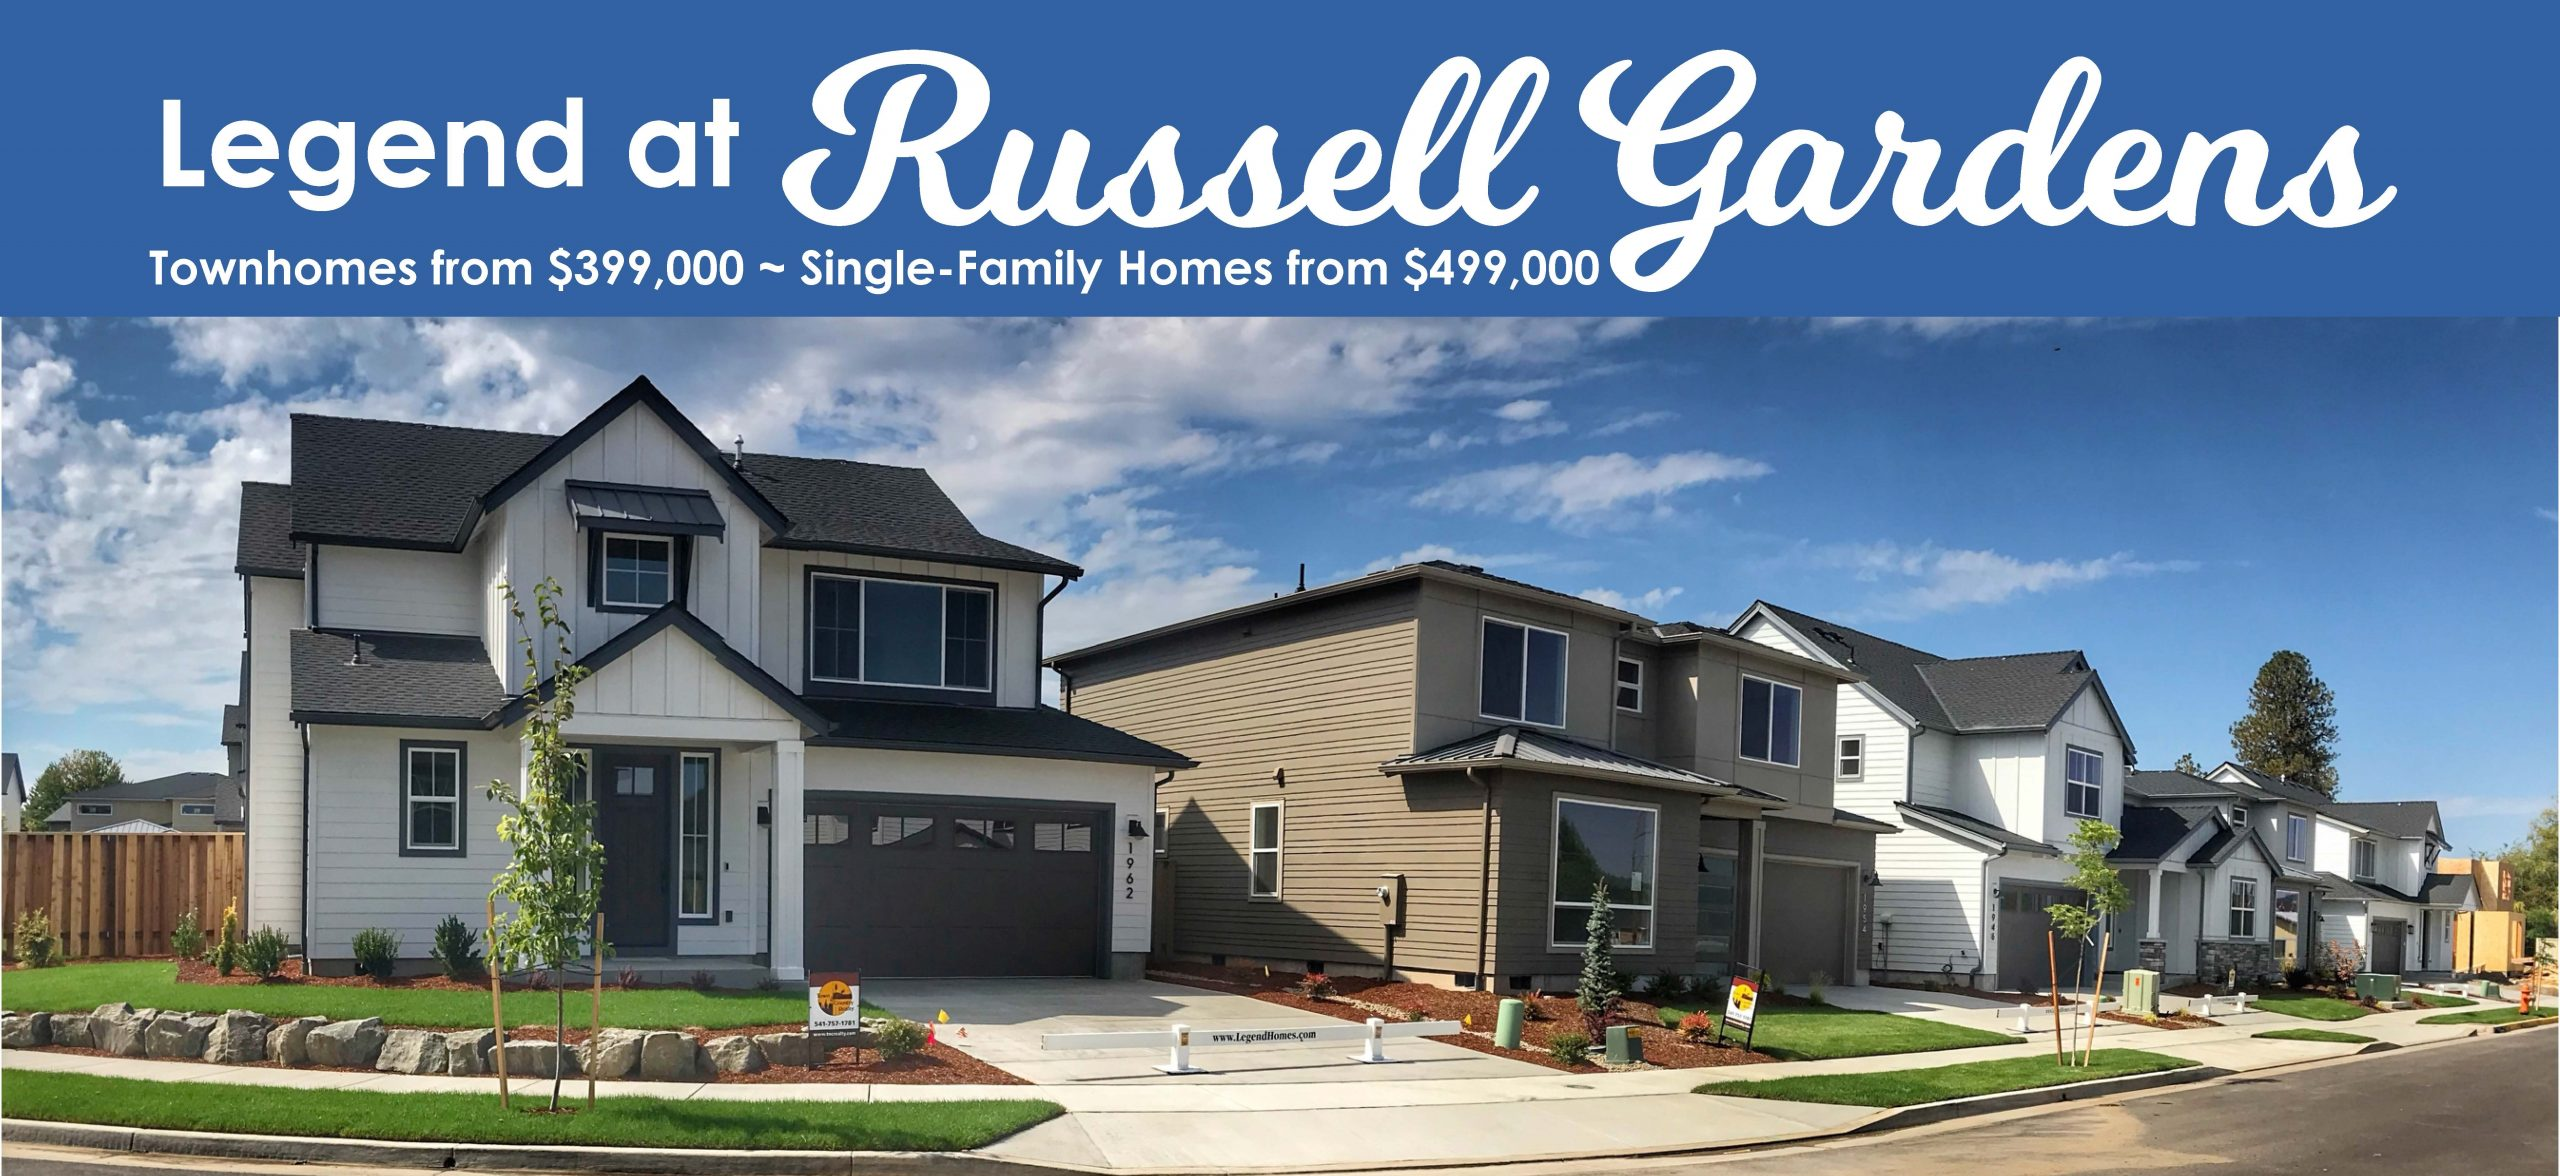 Special Pricing on 6 Select Homes.  Starting from $399,000!